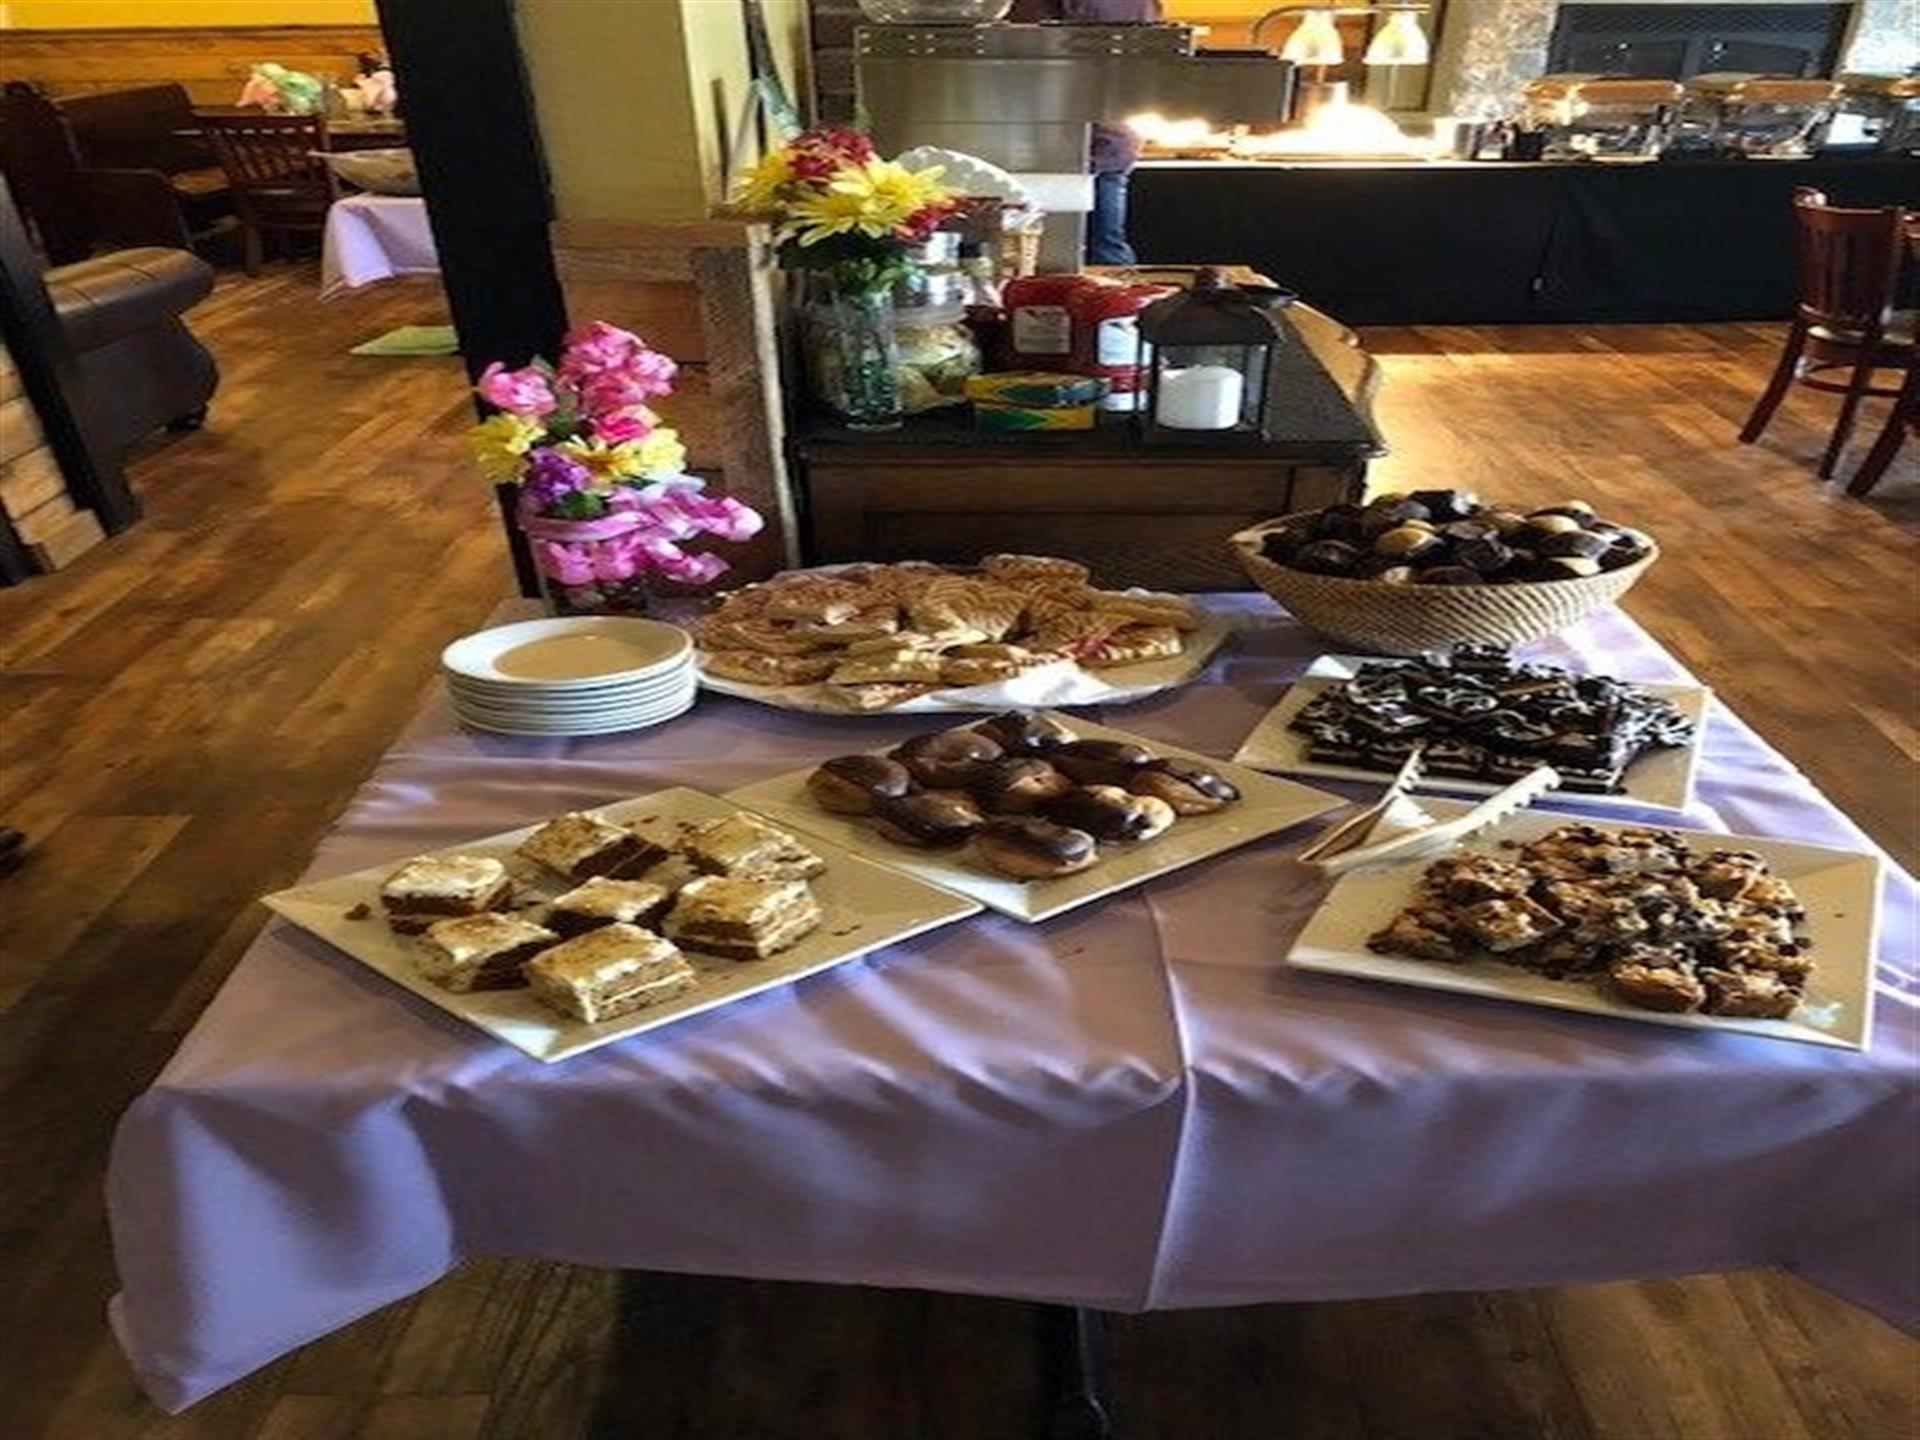 dessert platters on a table with purple tablecloth